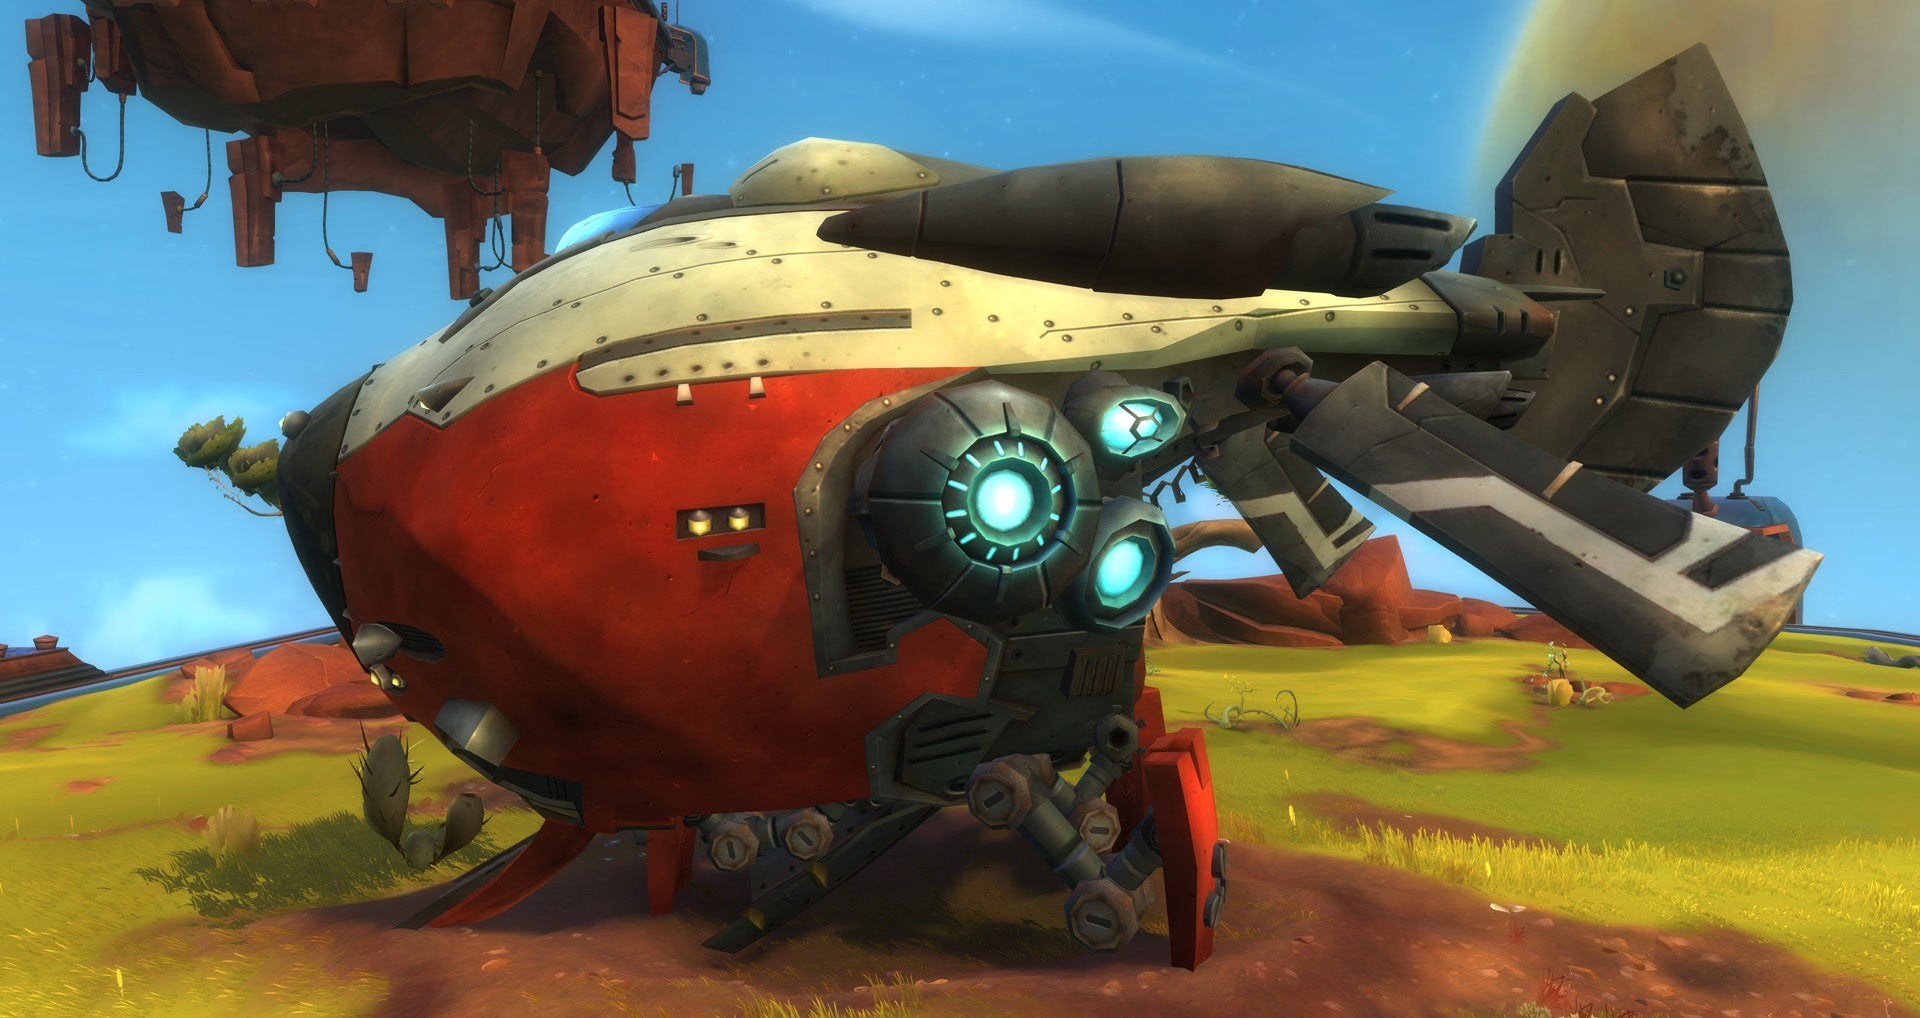 WildStar Launches Worldwide In June, Preorders Begin Next Week